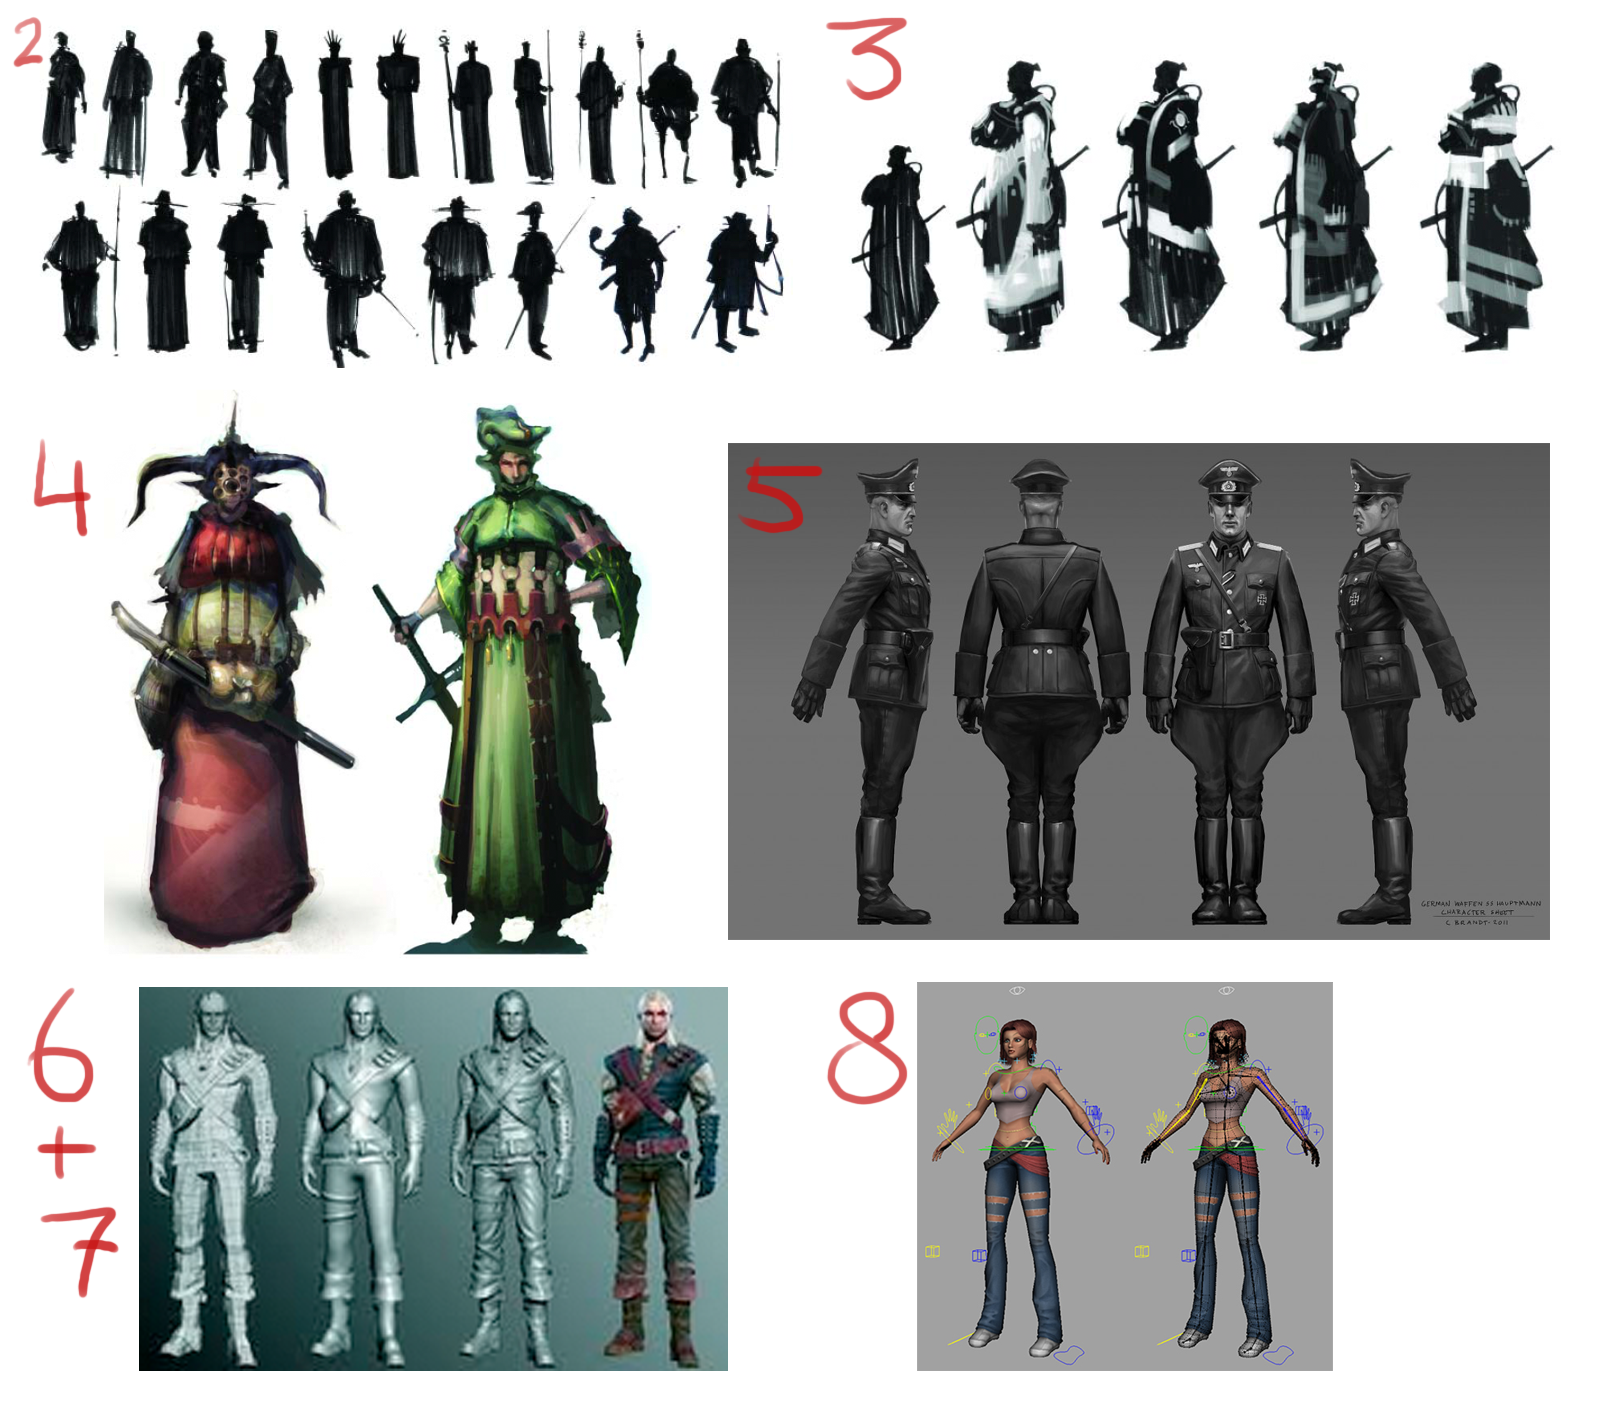 Character Concept Design Process : The raven maiden transmedial character design games vs